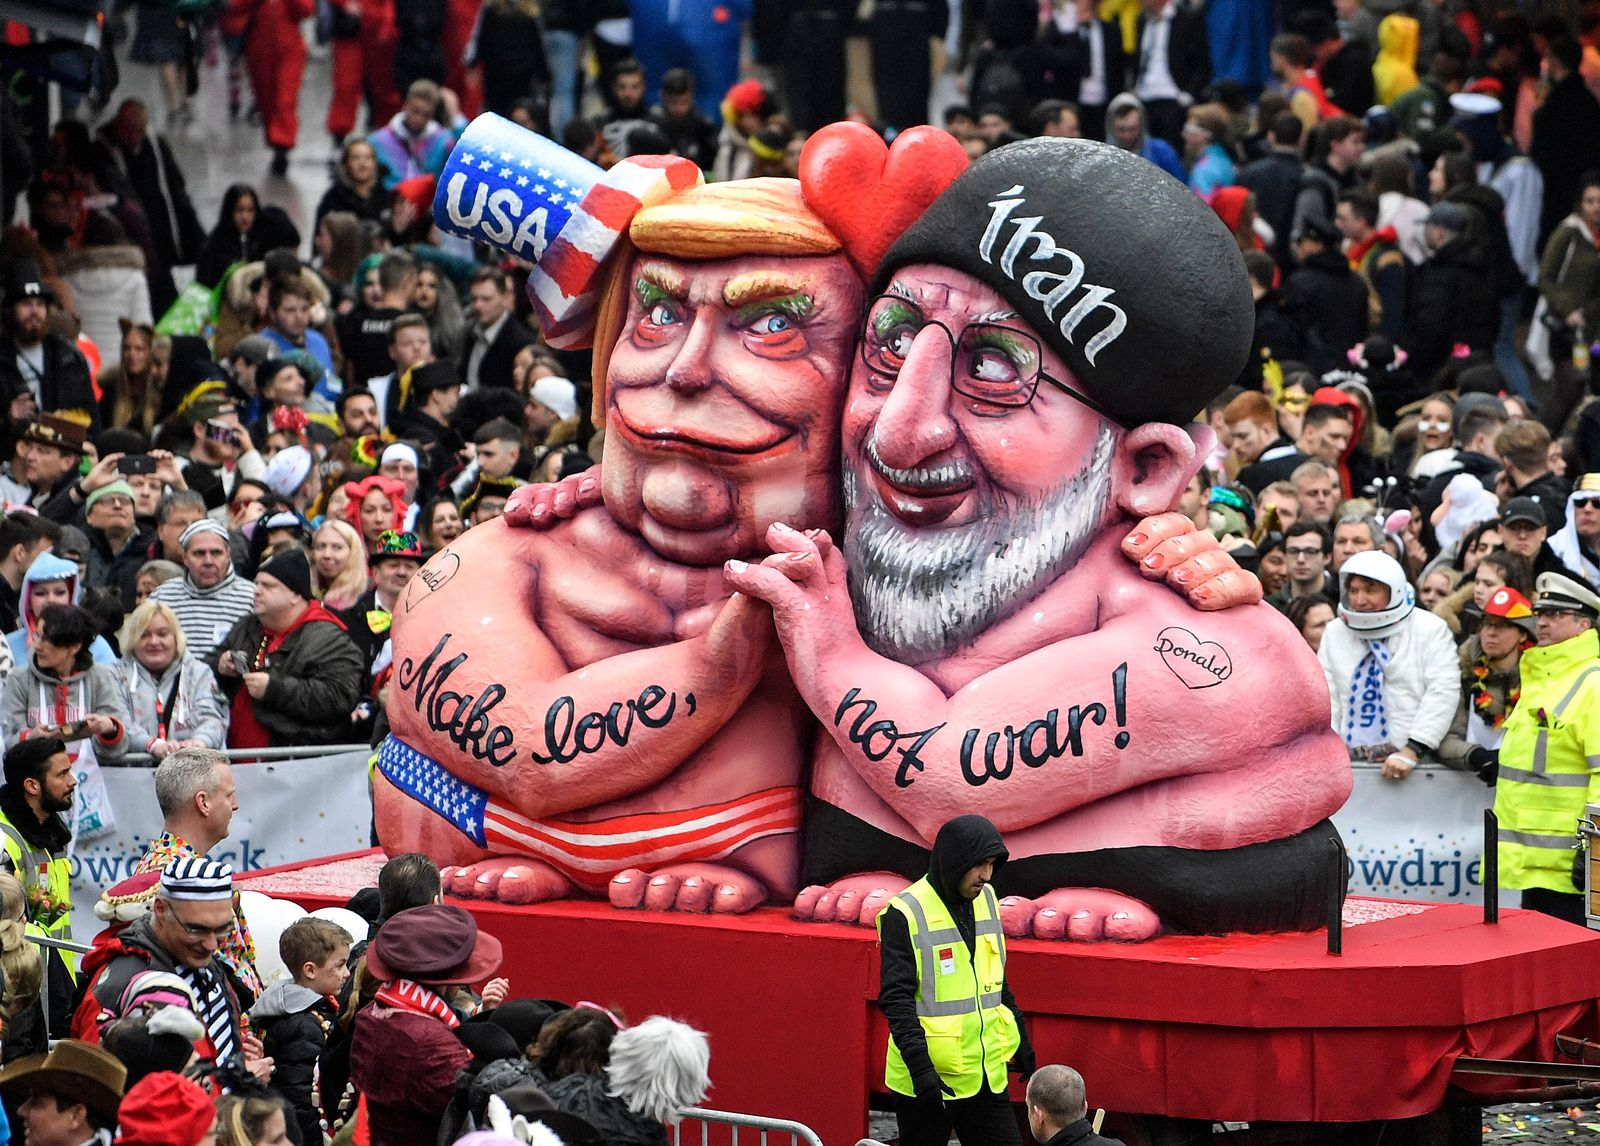 A carnival float depicts US President Donald Trump holding hands with Iran's President Hassan Rohani during the traditional carnival parade in Duesseldorf, Germany, on Monday, Feb. 24, 2020. The foolish street spectacles in the carnival centers of Duesseldorf, Mainz and Cologne, watched by hundreds of thousands of people, are the highlights in Germany's carnival season on Rosemonday. (AP Photo/Martin Meissner)